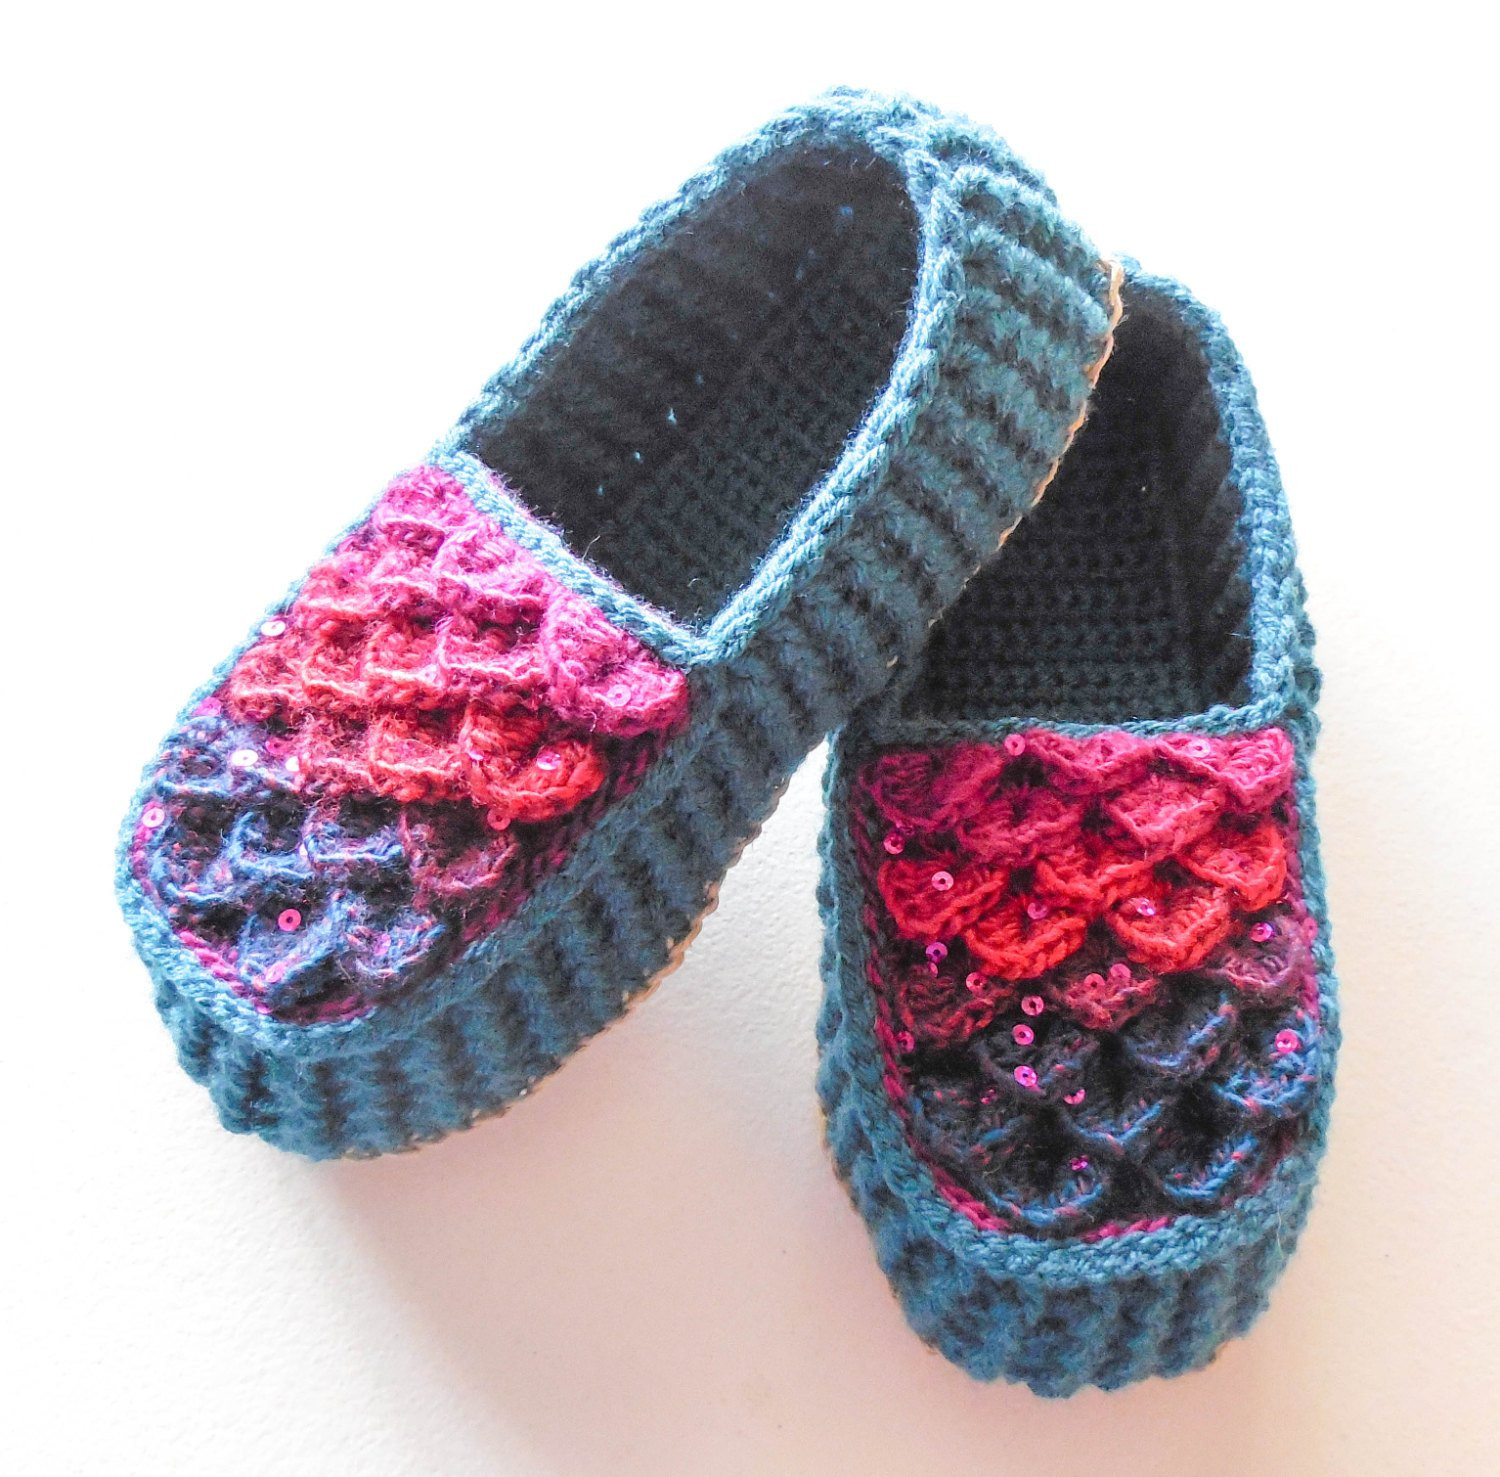 Crochet Booties for Adults Unique Crocodile Stitch Loafers Adult Sizes Turquoise Crochet Of Delightful 42 Models Crochet Booties for Adults